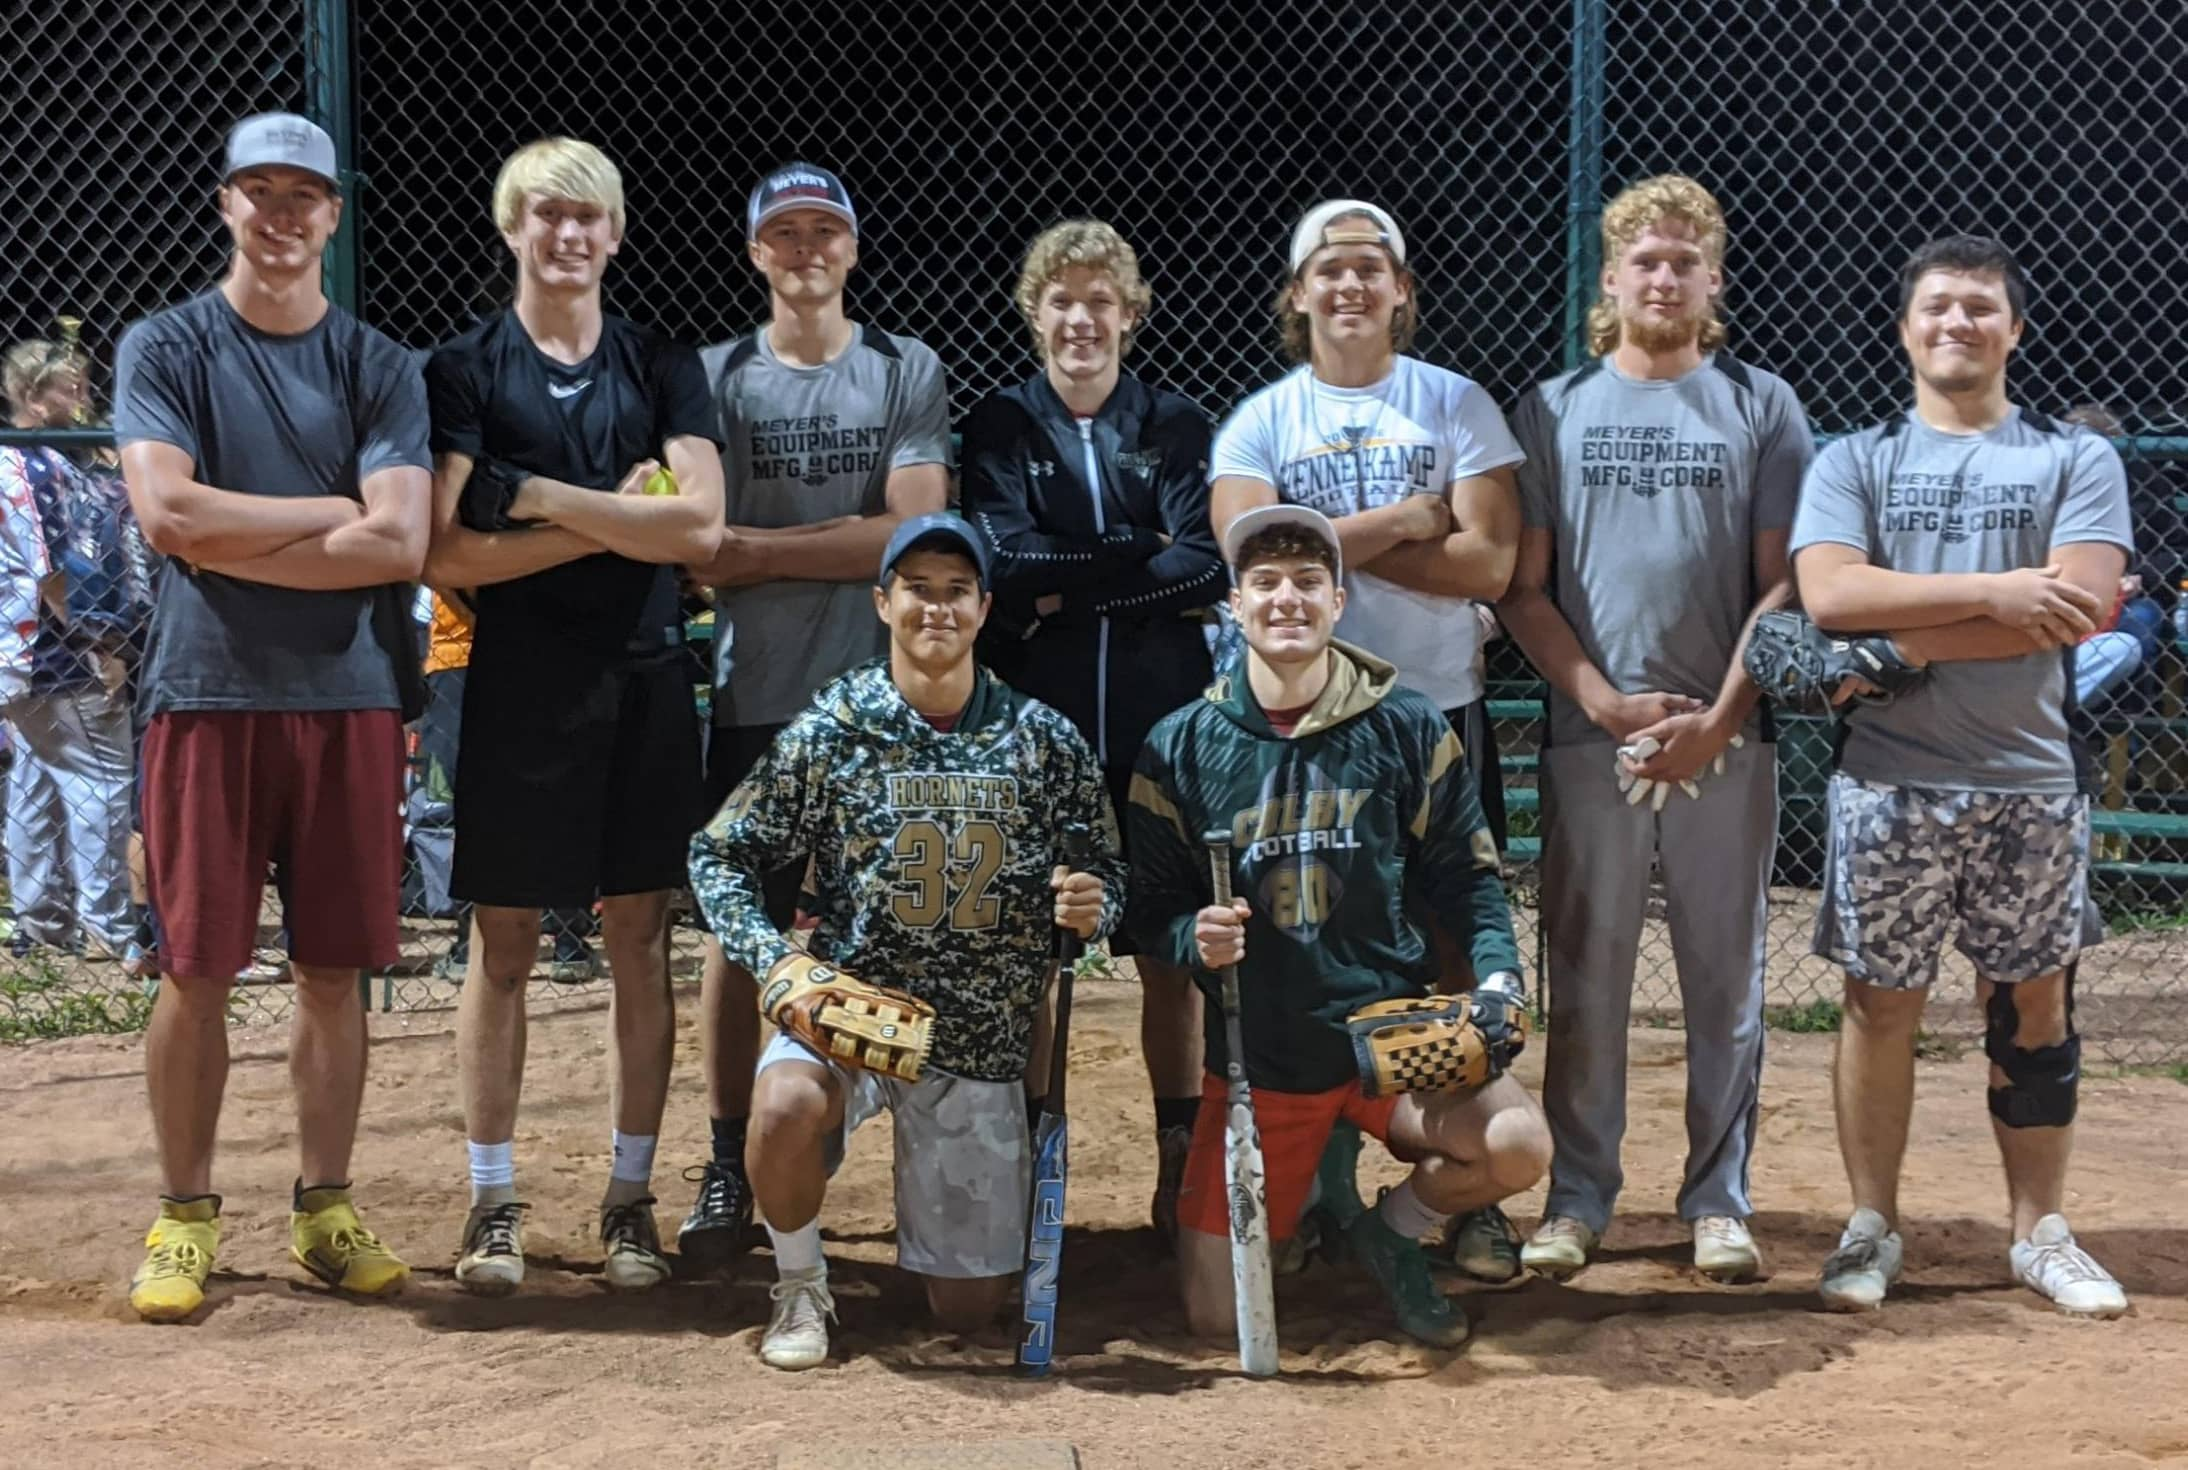 County Cow Truckers from Colby took 3rd in the Atwood League. (Photo by Sara Blume)